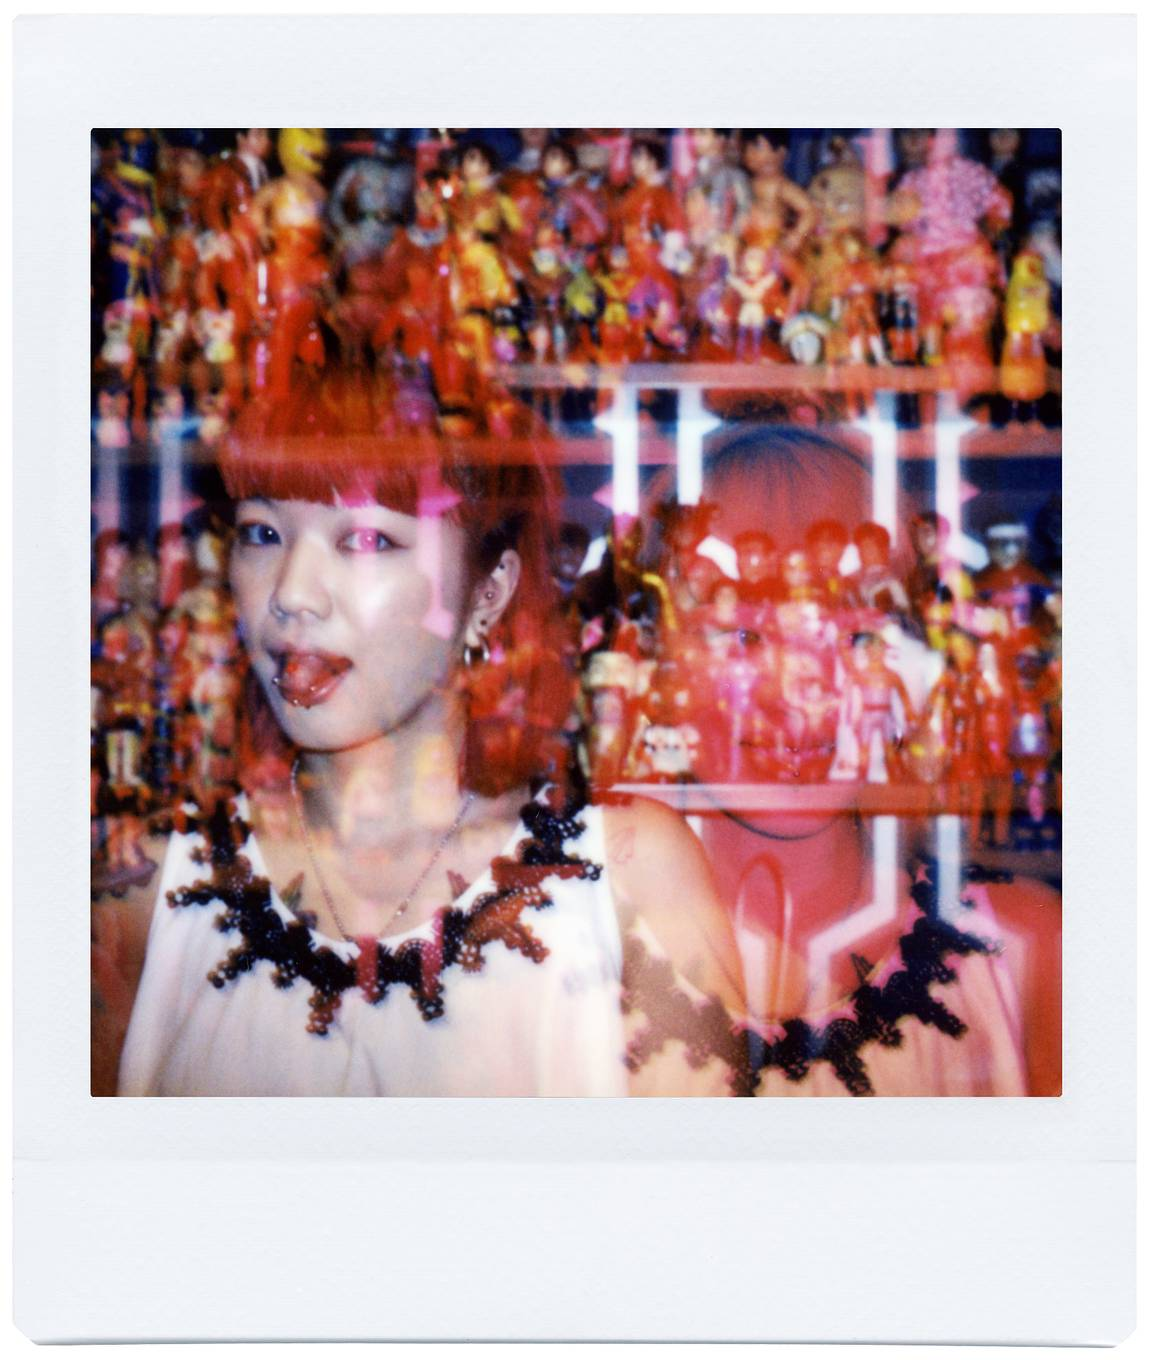 Hong Kong's Tattooist Gmaz Tests the Lomo'Instant Square